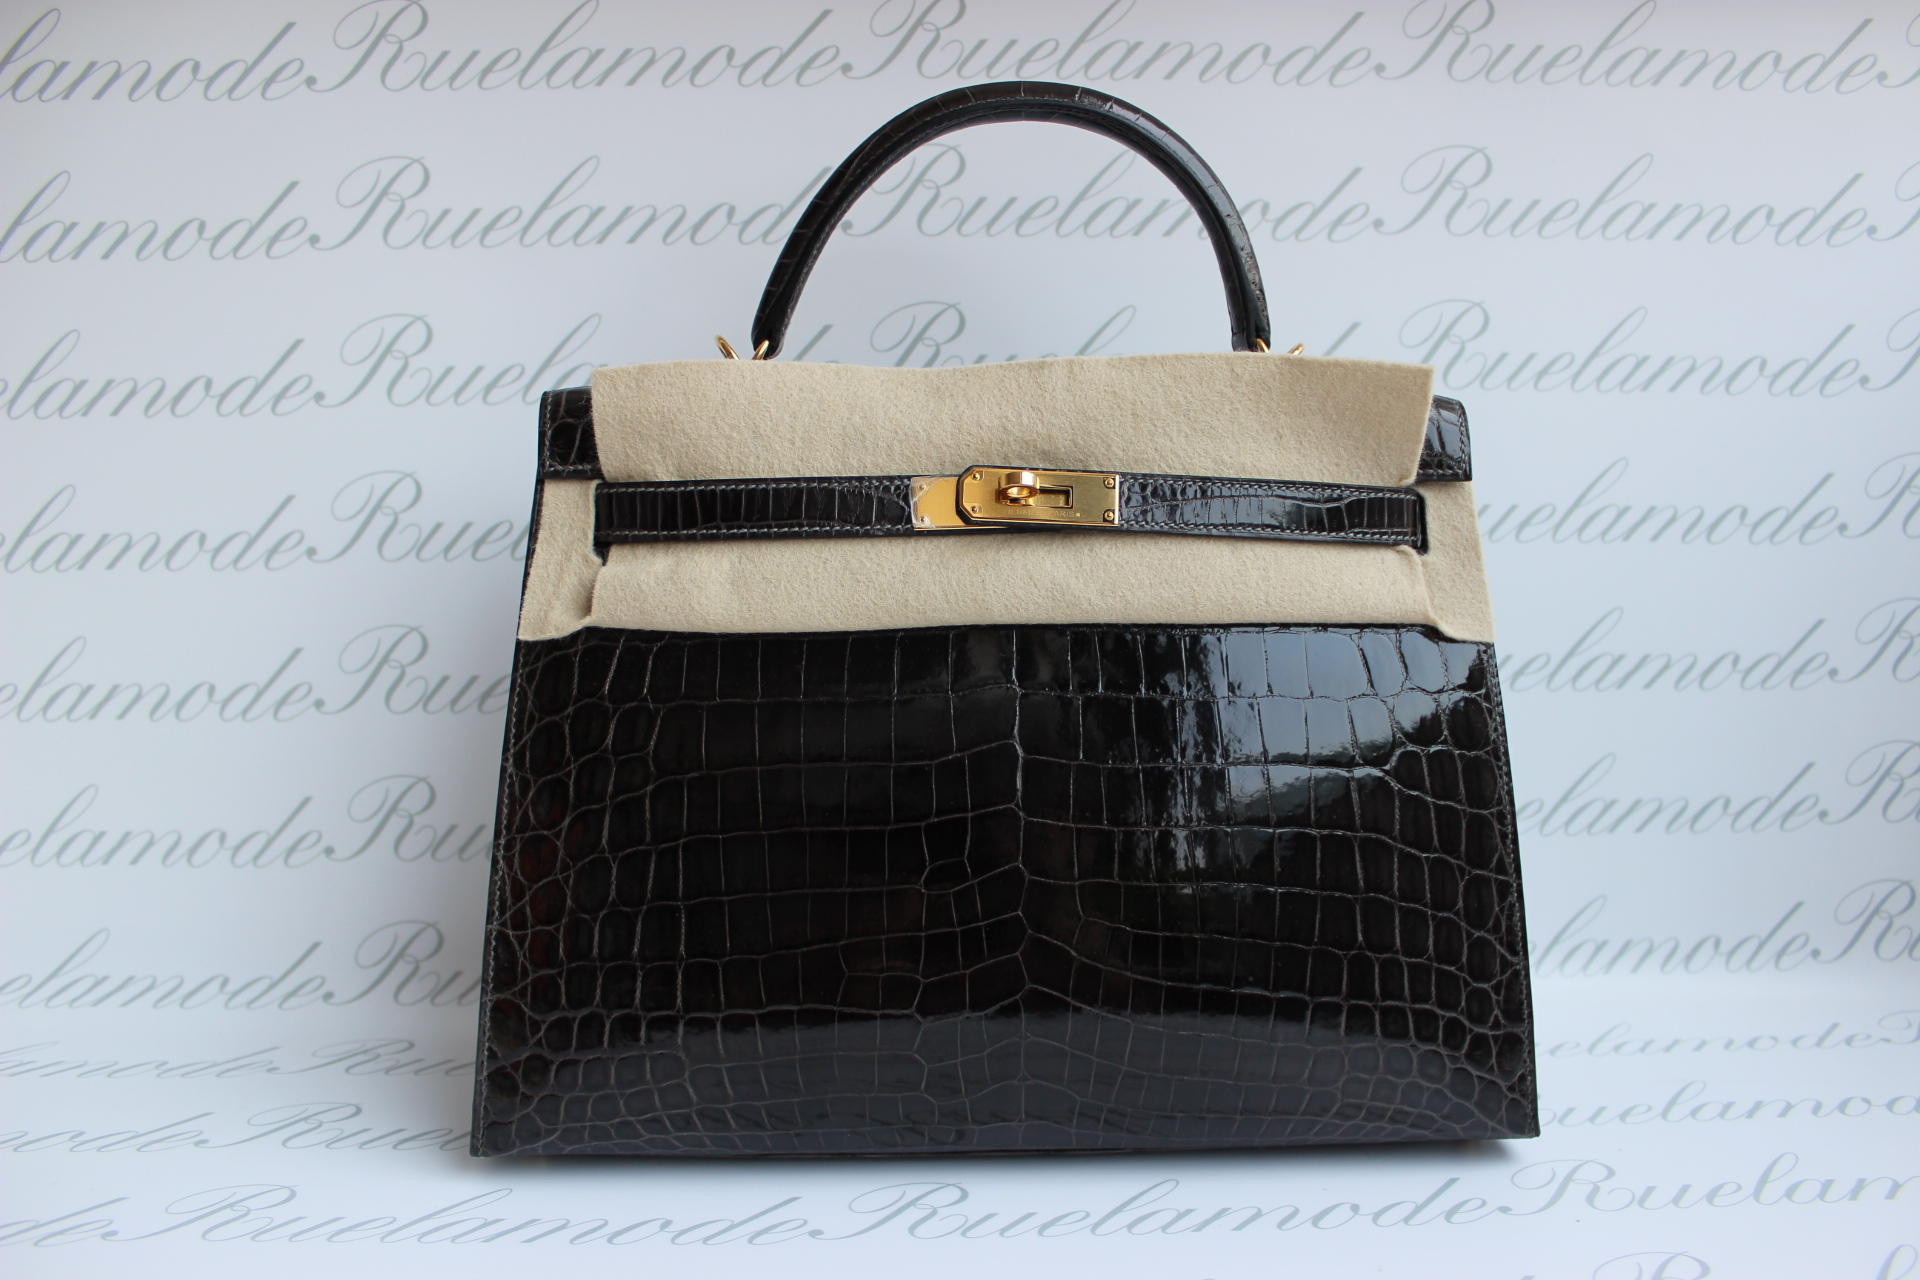 Brand New Hermes Kelly 32 Gris Fonce Alligator with GHW S$68,000 ...